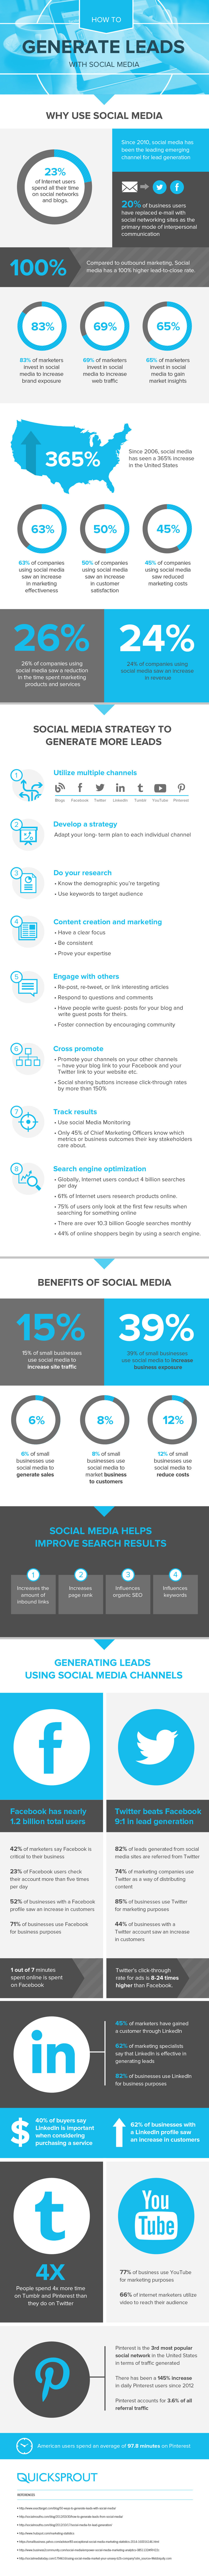 Infographic: How to Generate Leads with Social Media #infographic